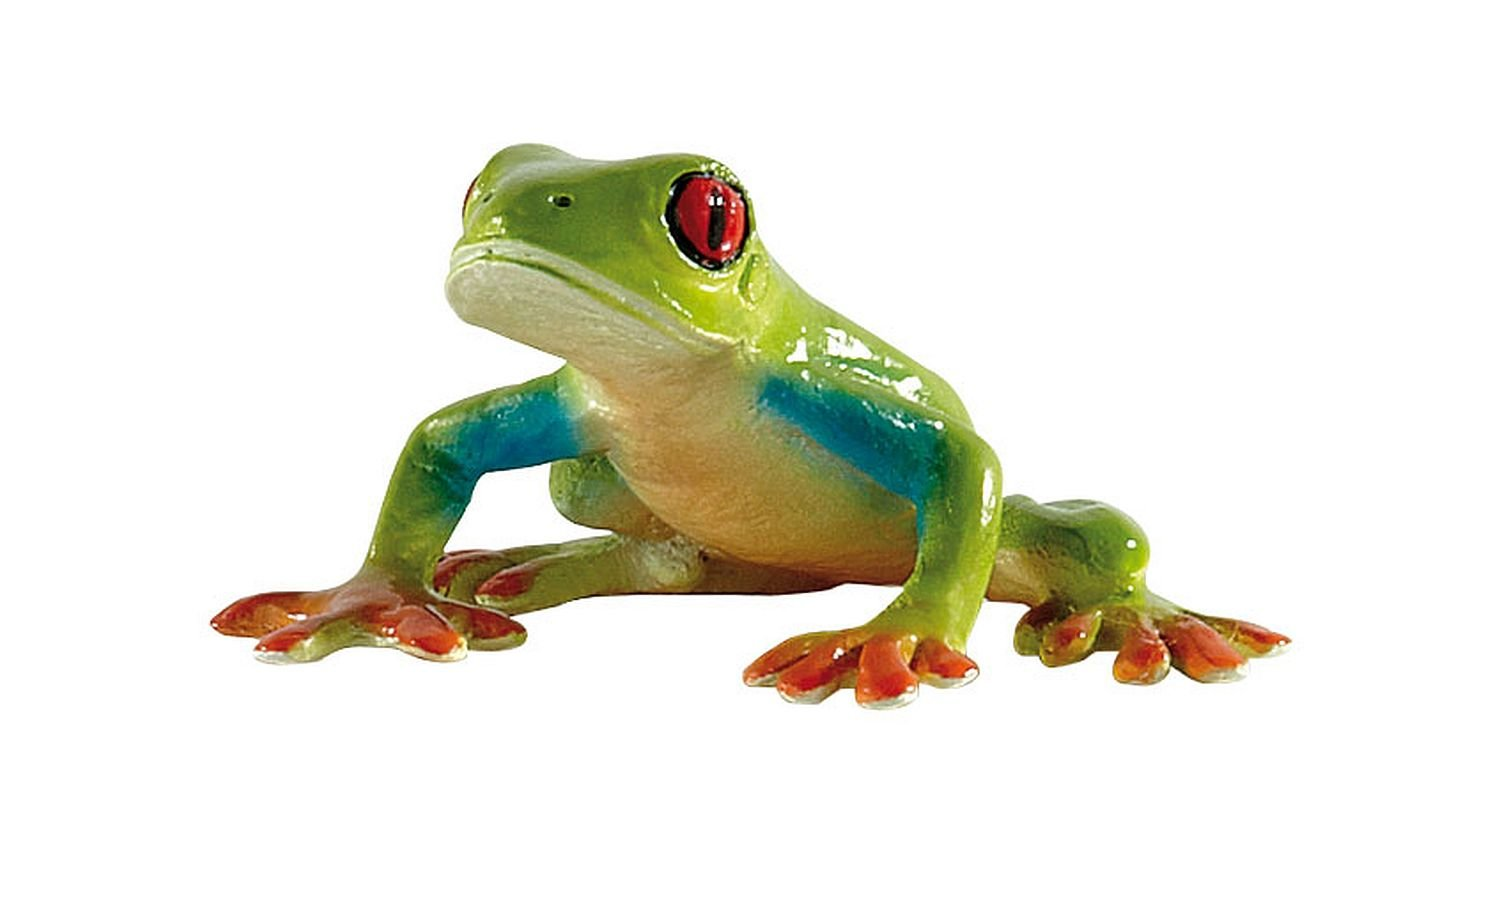 Amazon.com: Bullyland Red-Eyed Tree Frog Action Figure: Toys & Games